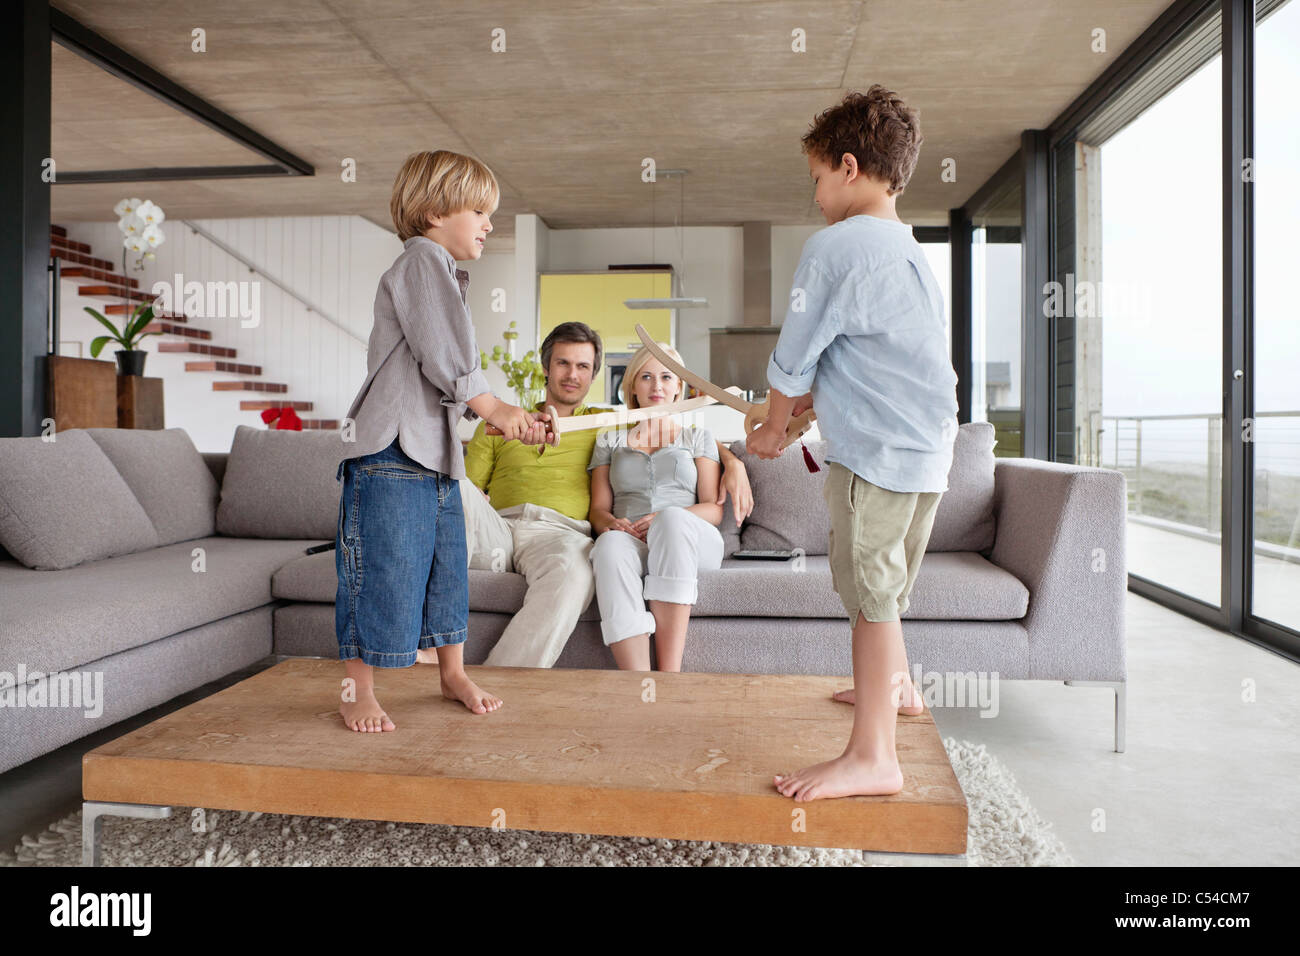 Boys playing with their parents sitting on a couch - Stock Image